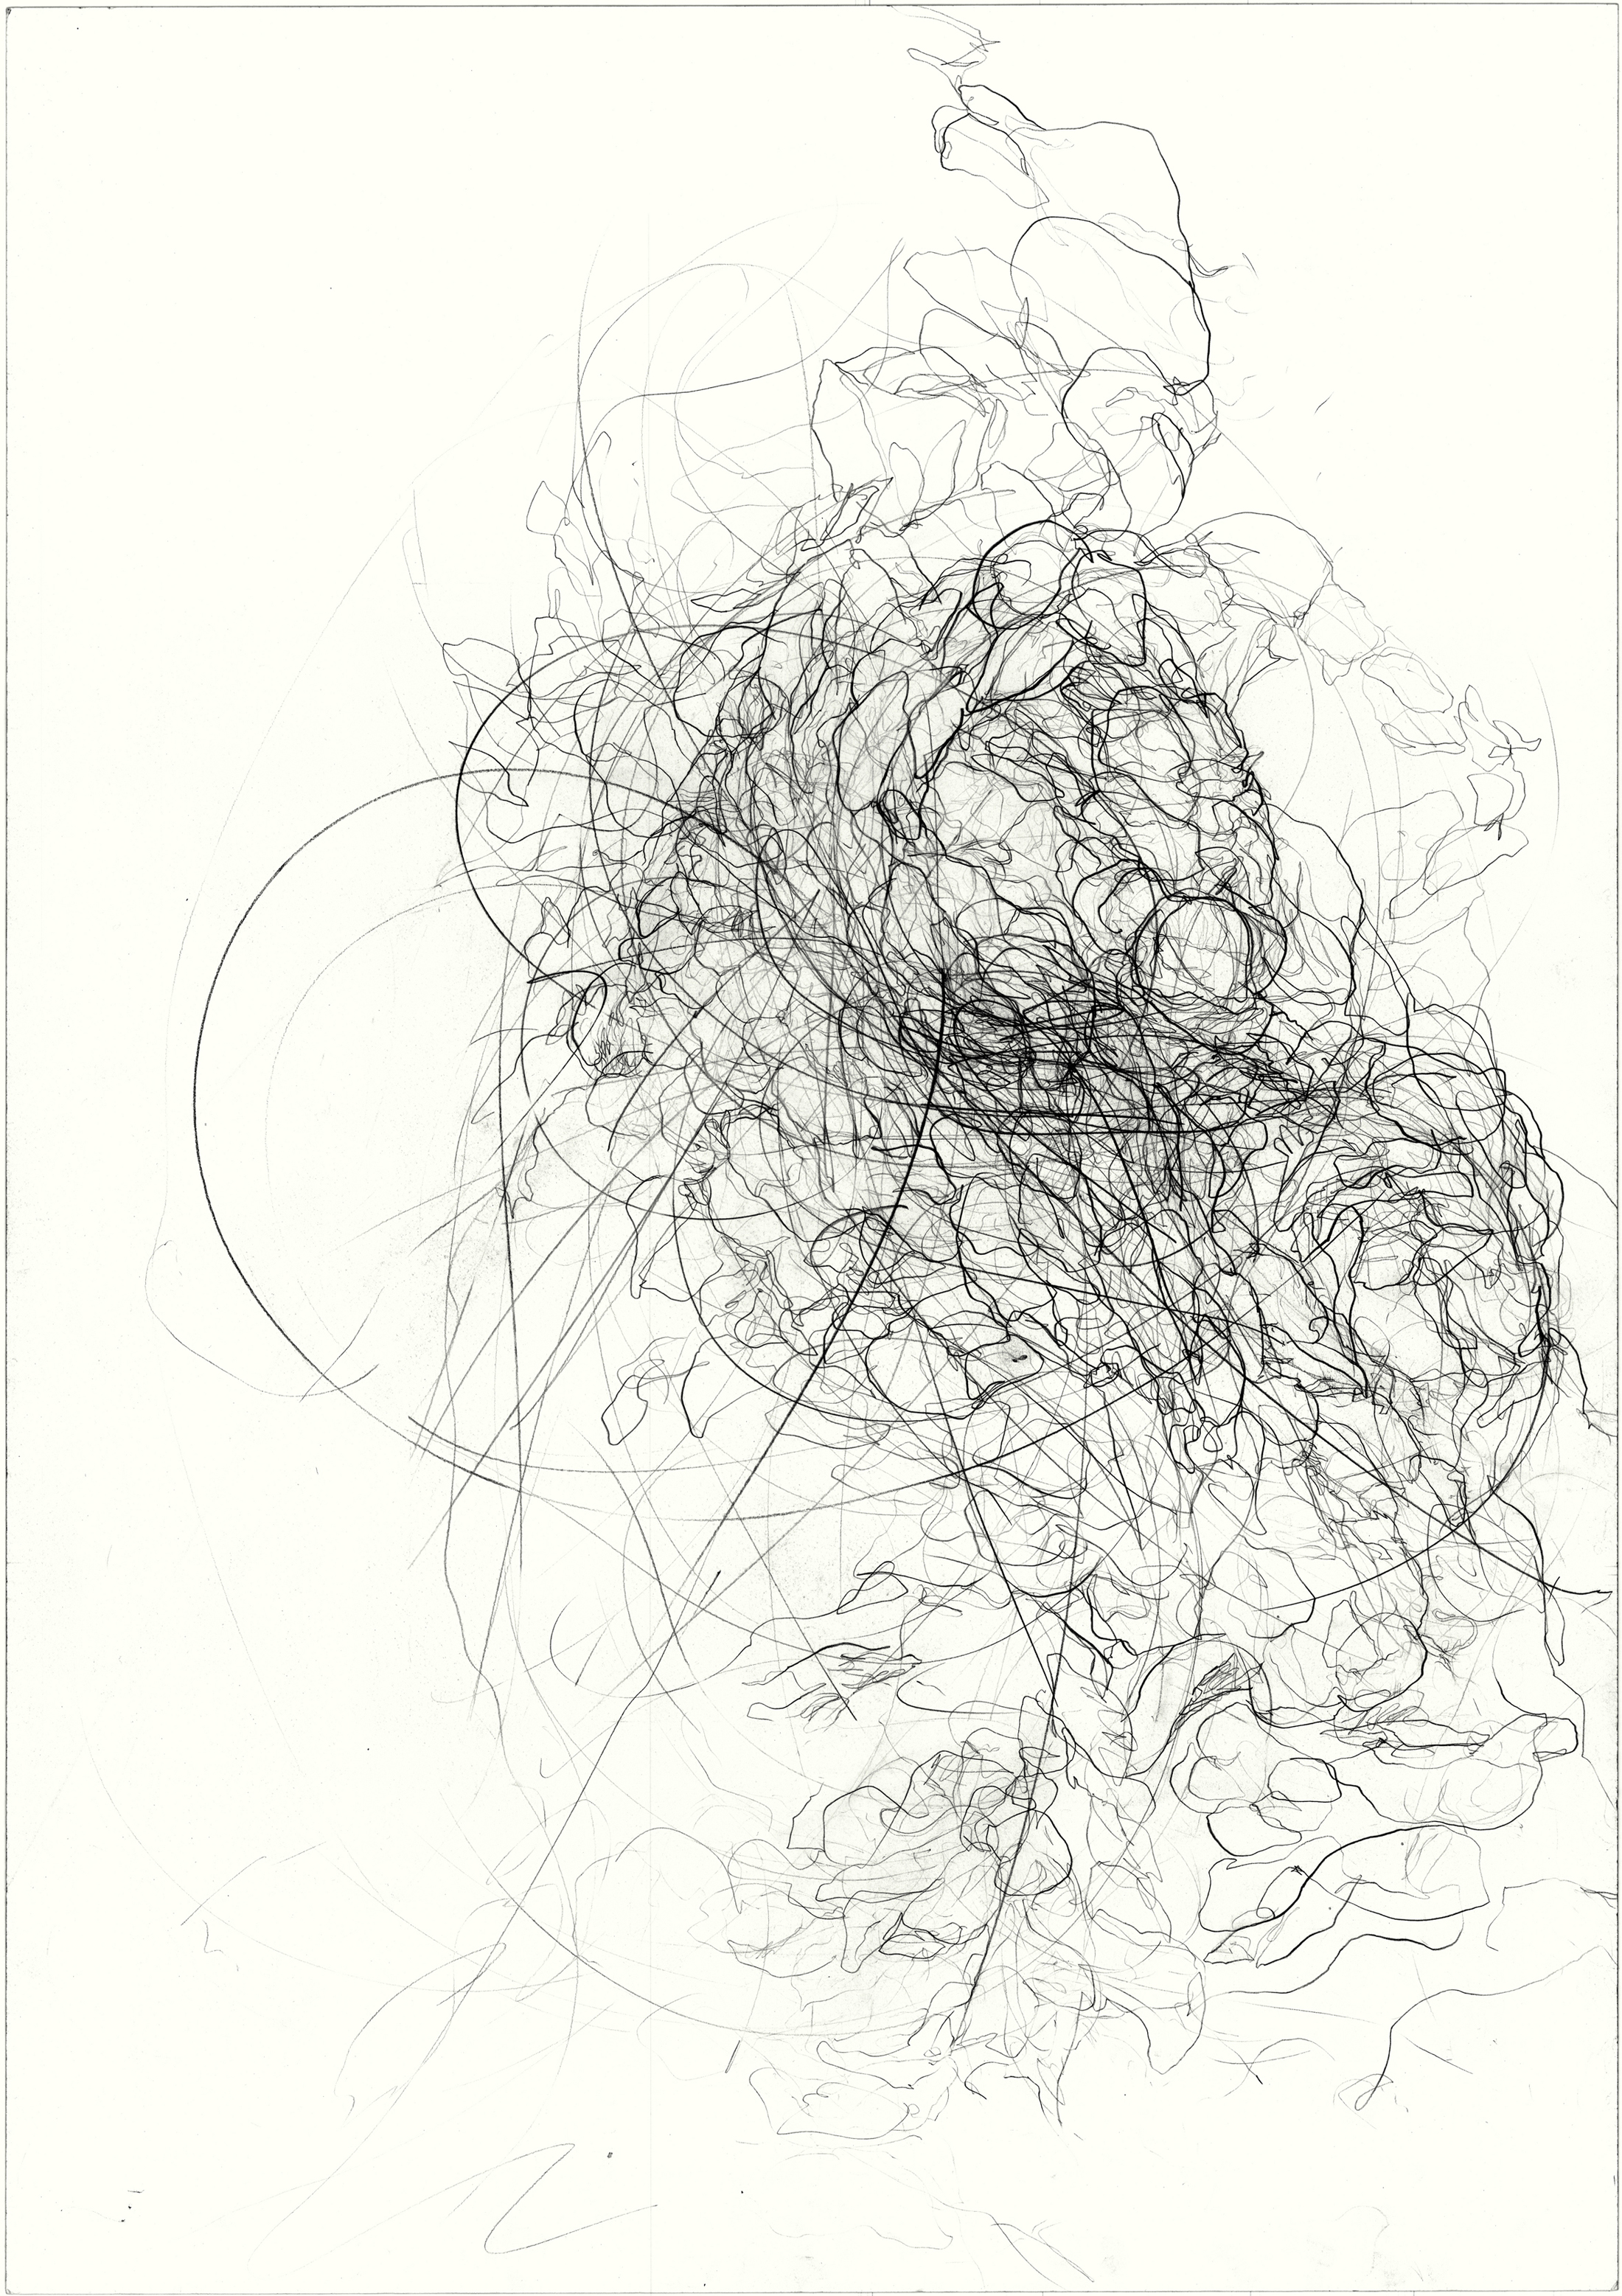 Absorb  2011, pencil on paper, 84.1 cm x 59.5 cm.